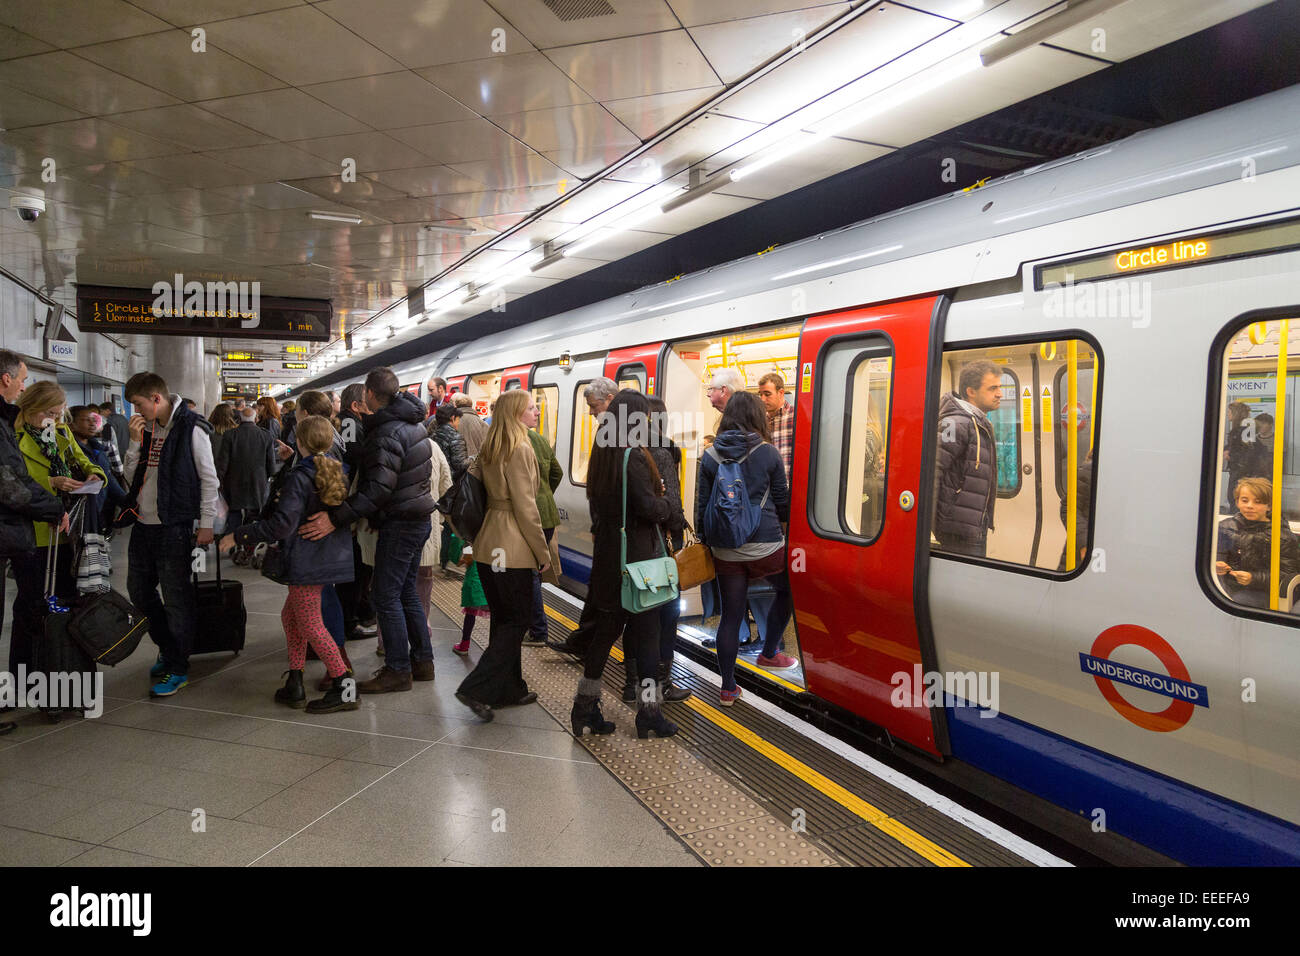 People boarding and alighting an S Stock train on the Circle line - Stock Image